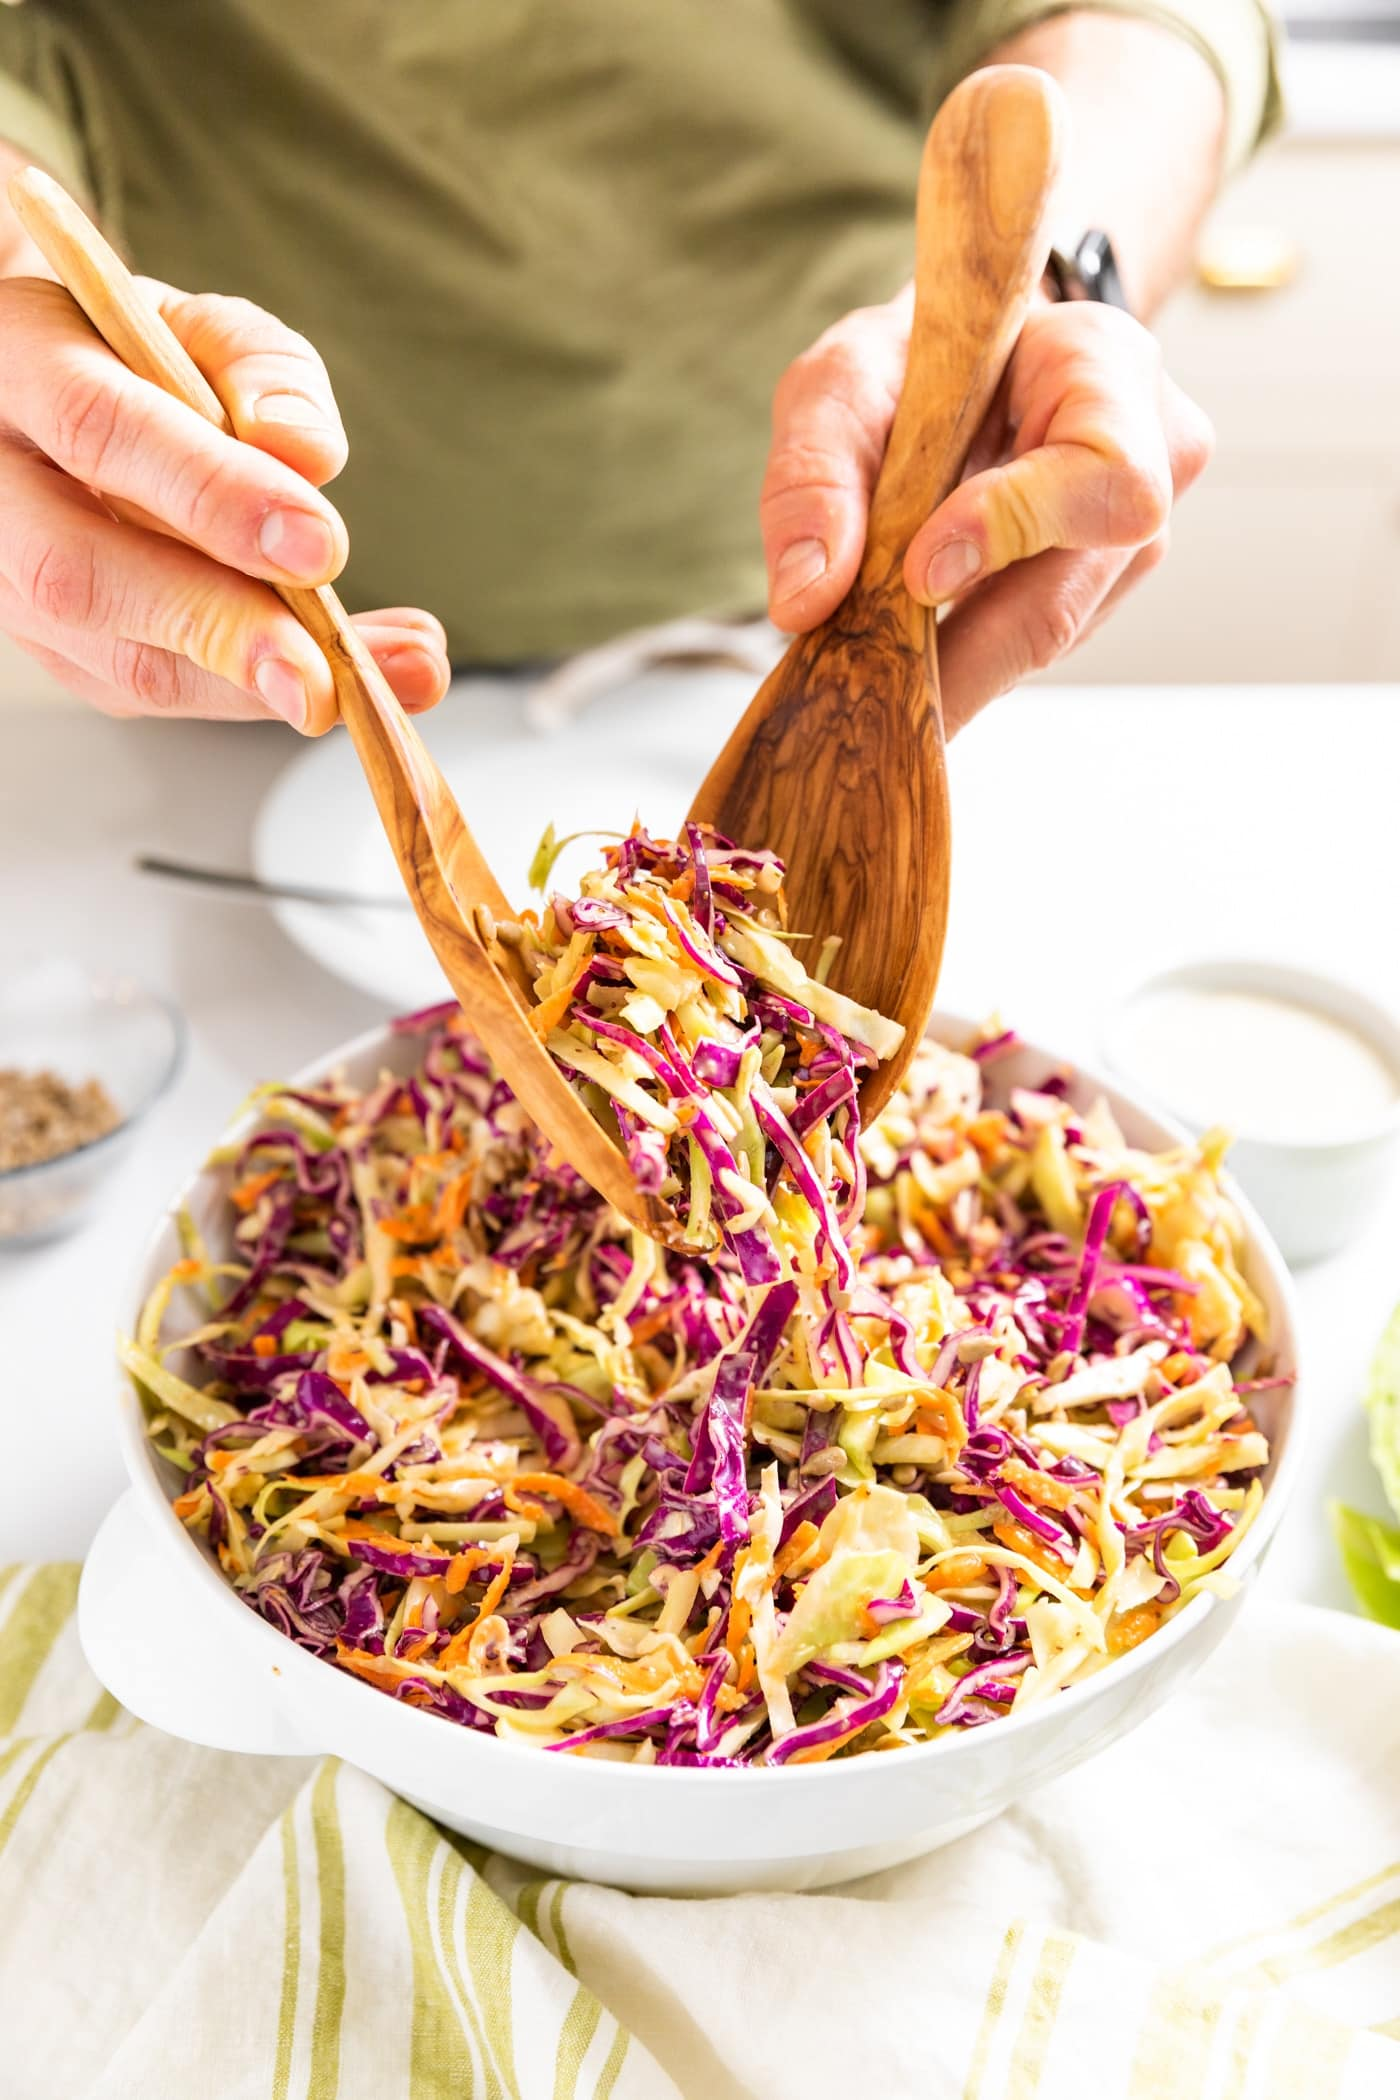 Two hands holding wooden tongs picking up red and green colored coleslaw